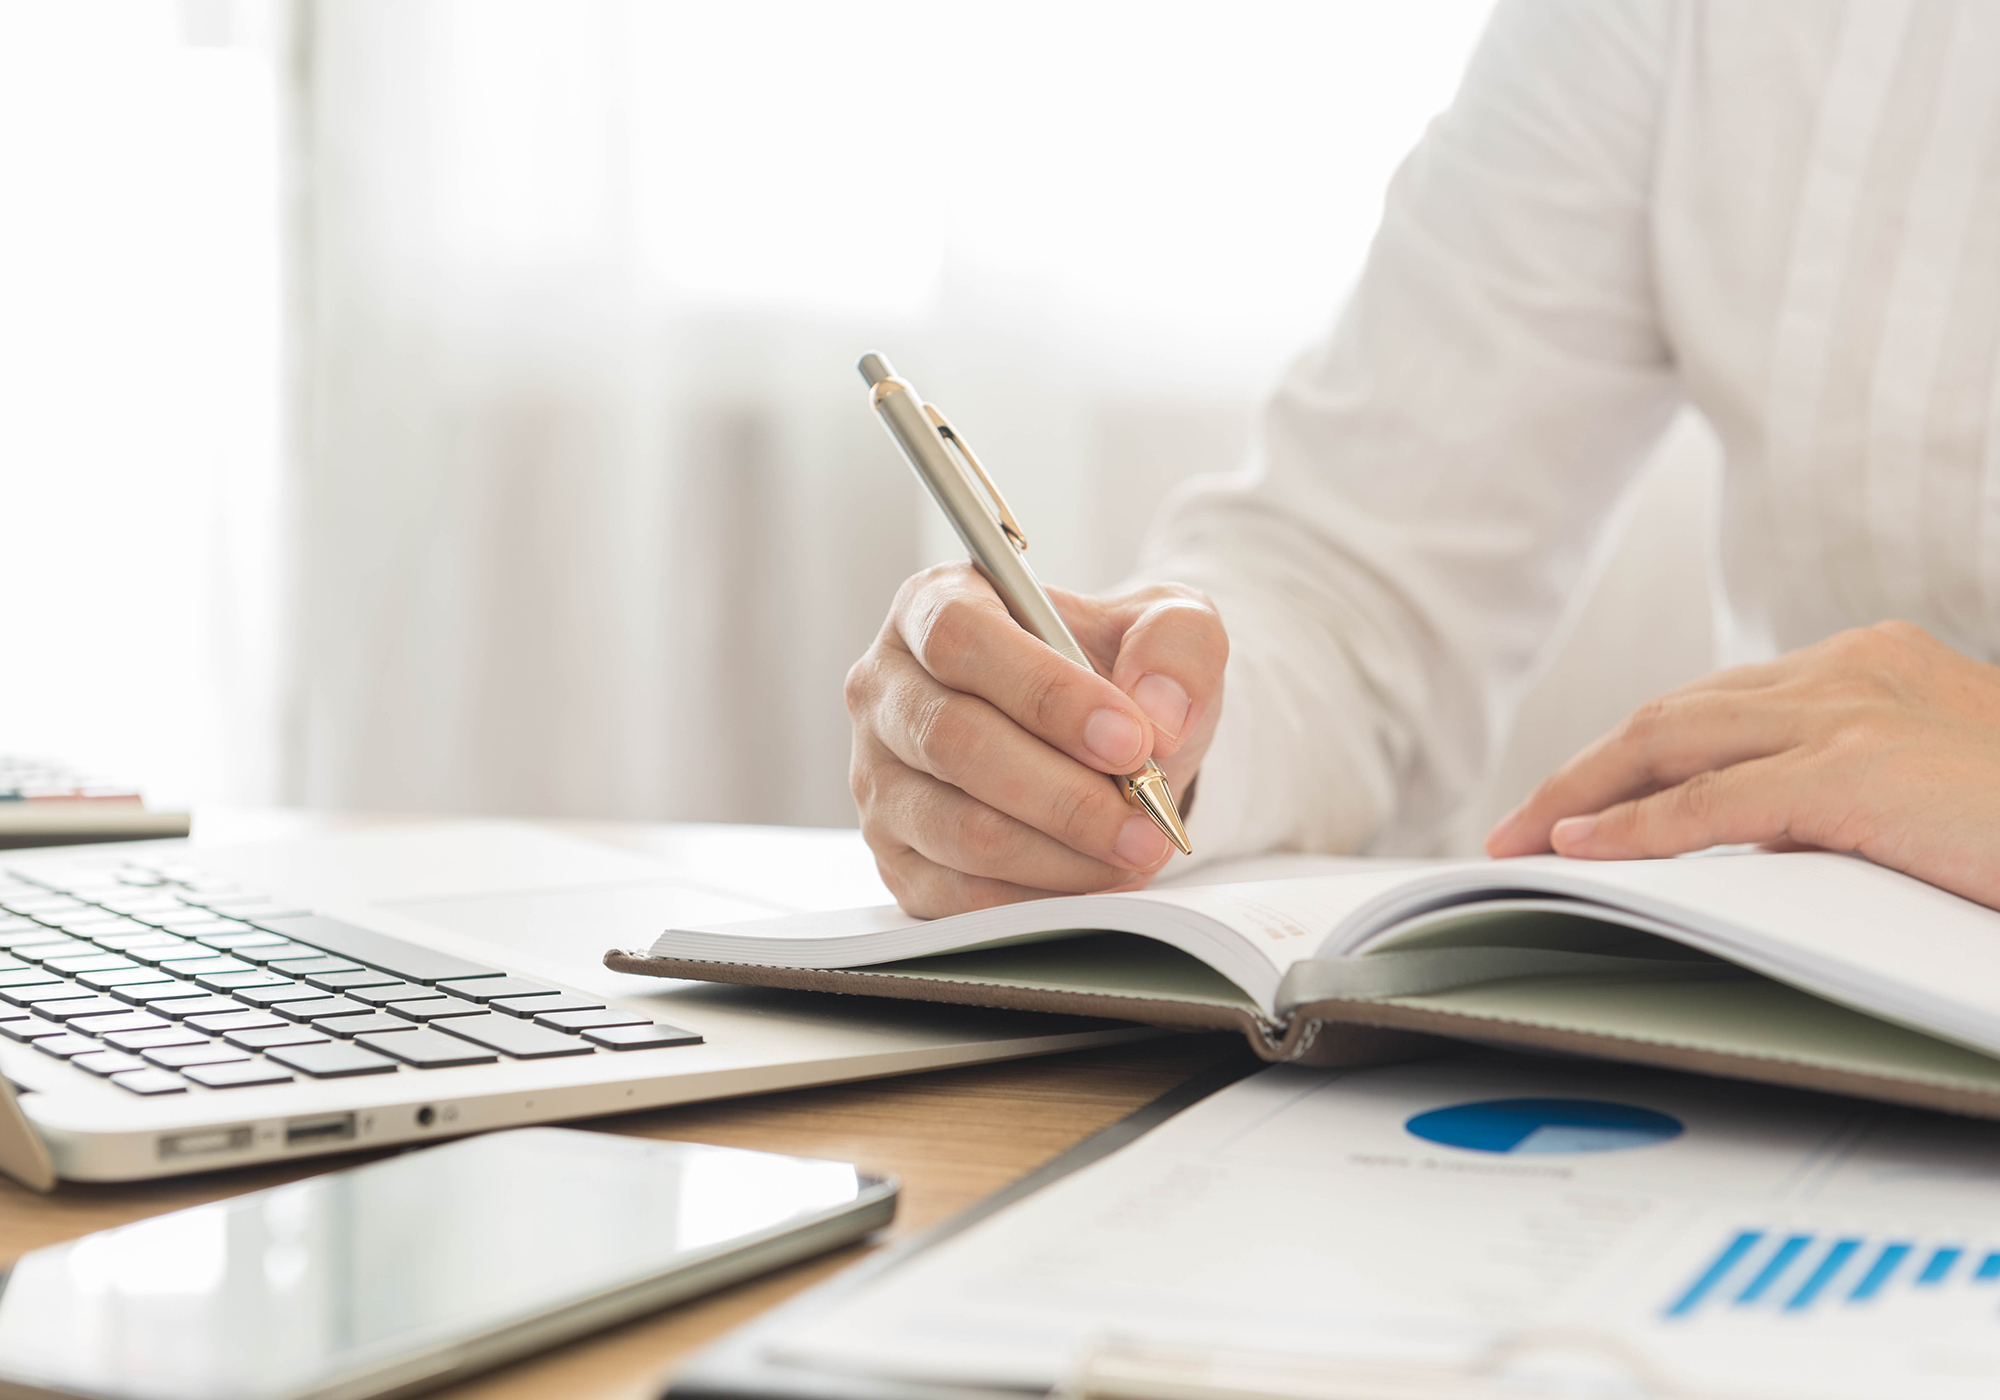 Person writing in notebook. (Image: Shutterstock)